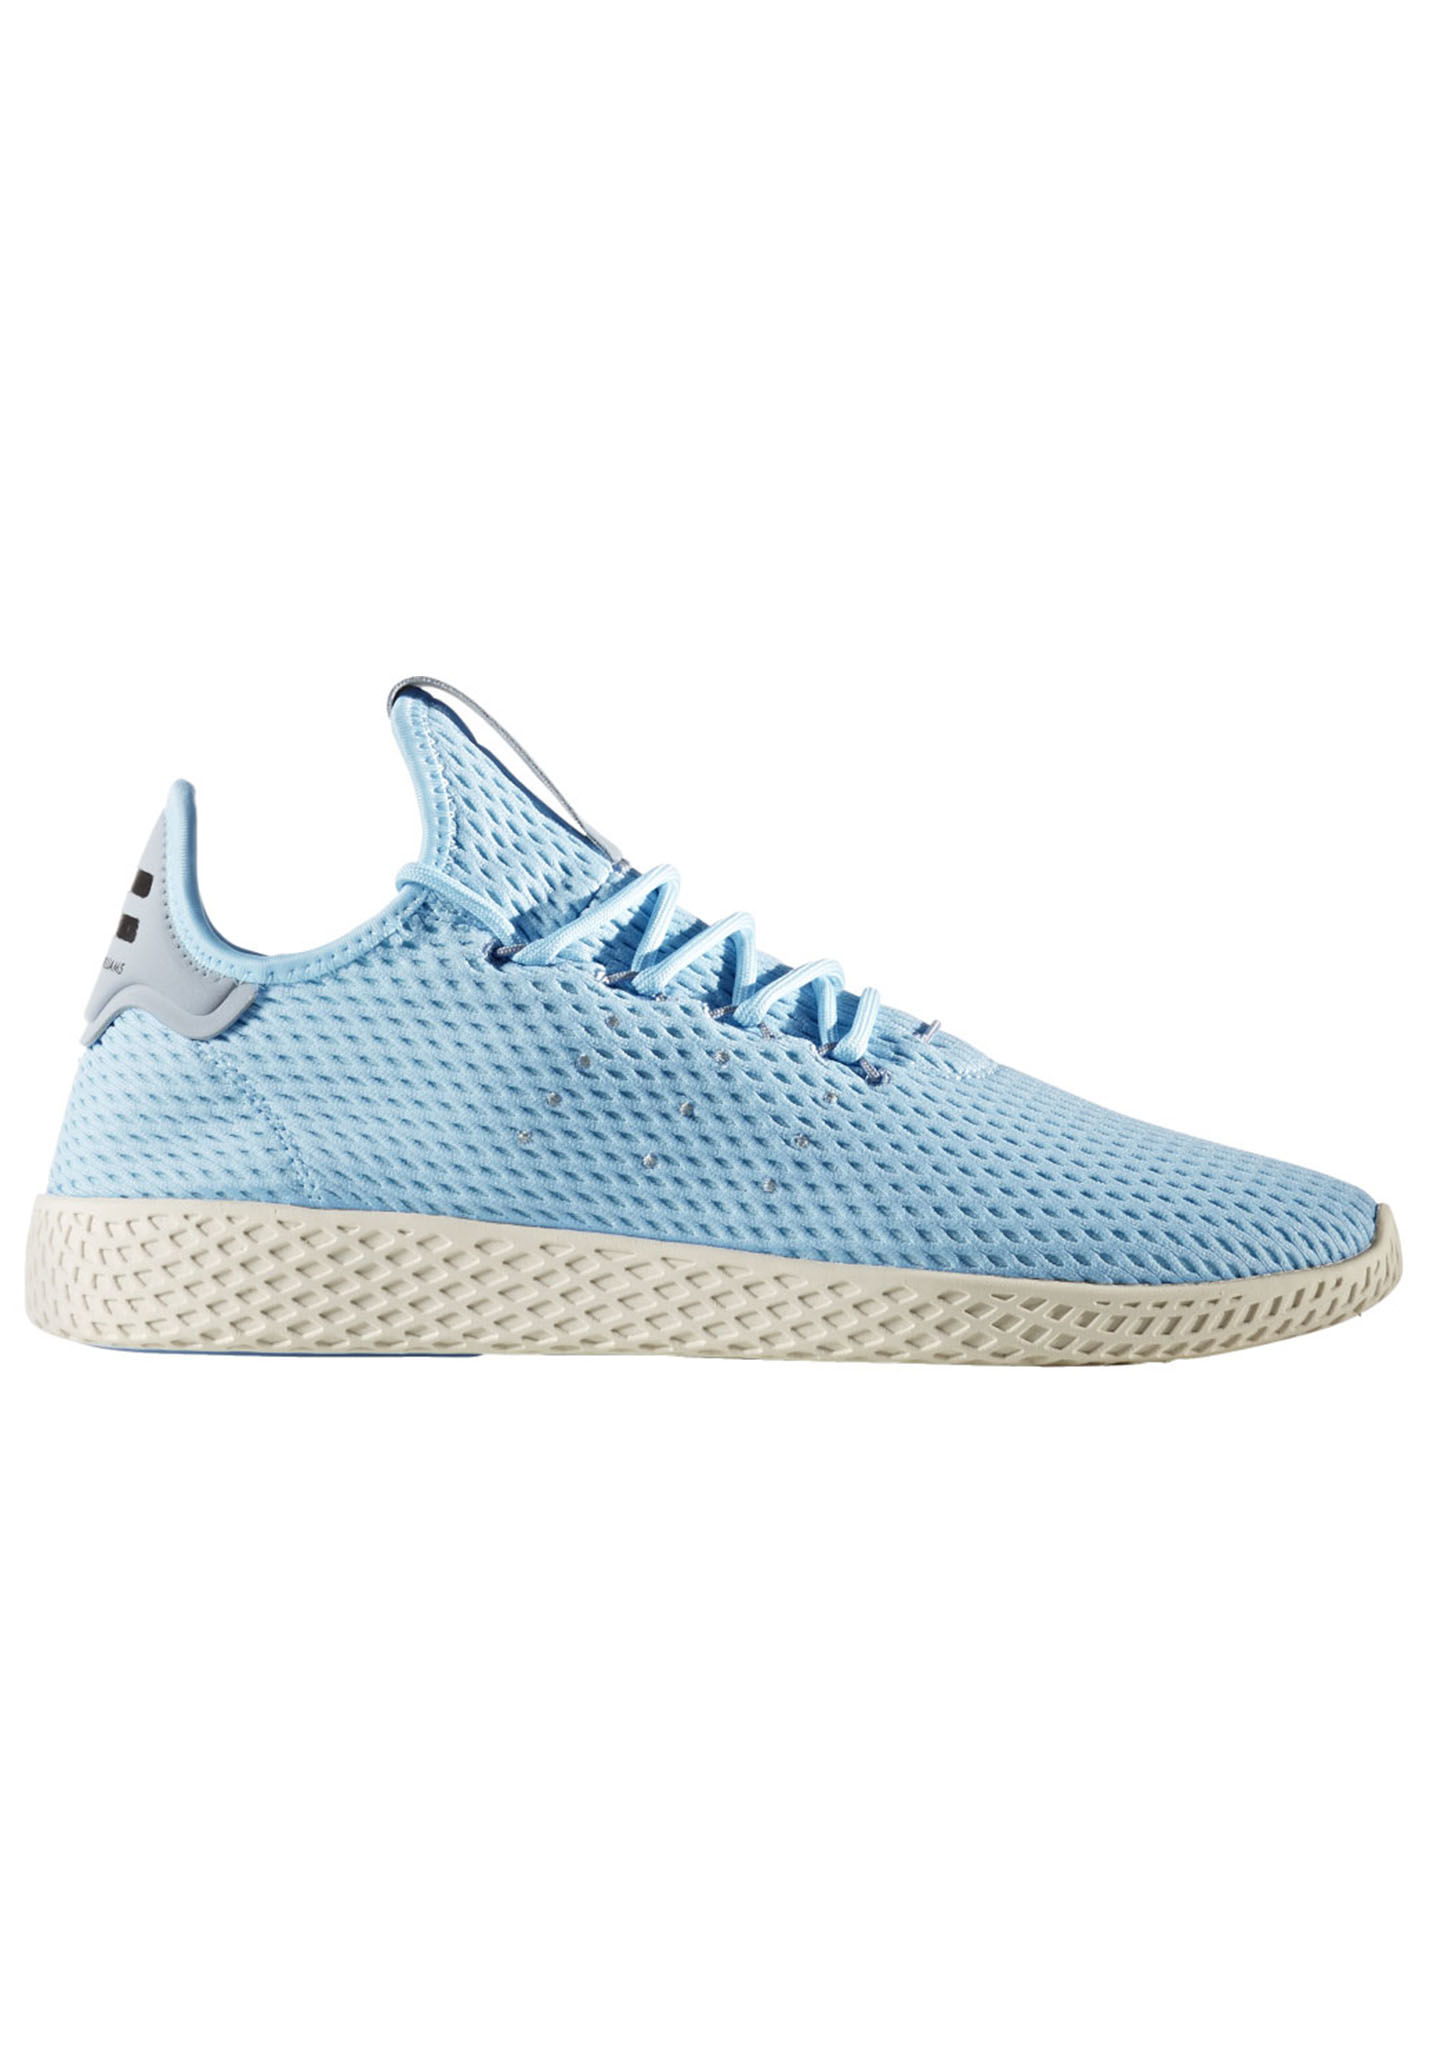 51aa099357d3f0 adidas Originals Pharrell Williams Tennis HU - Sneaker für Herren - Blau -  Planet Sports